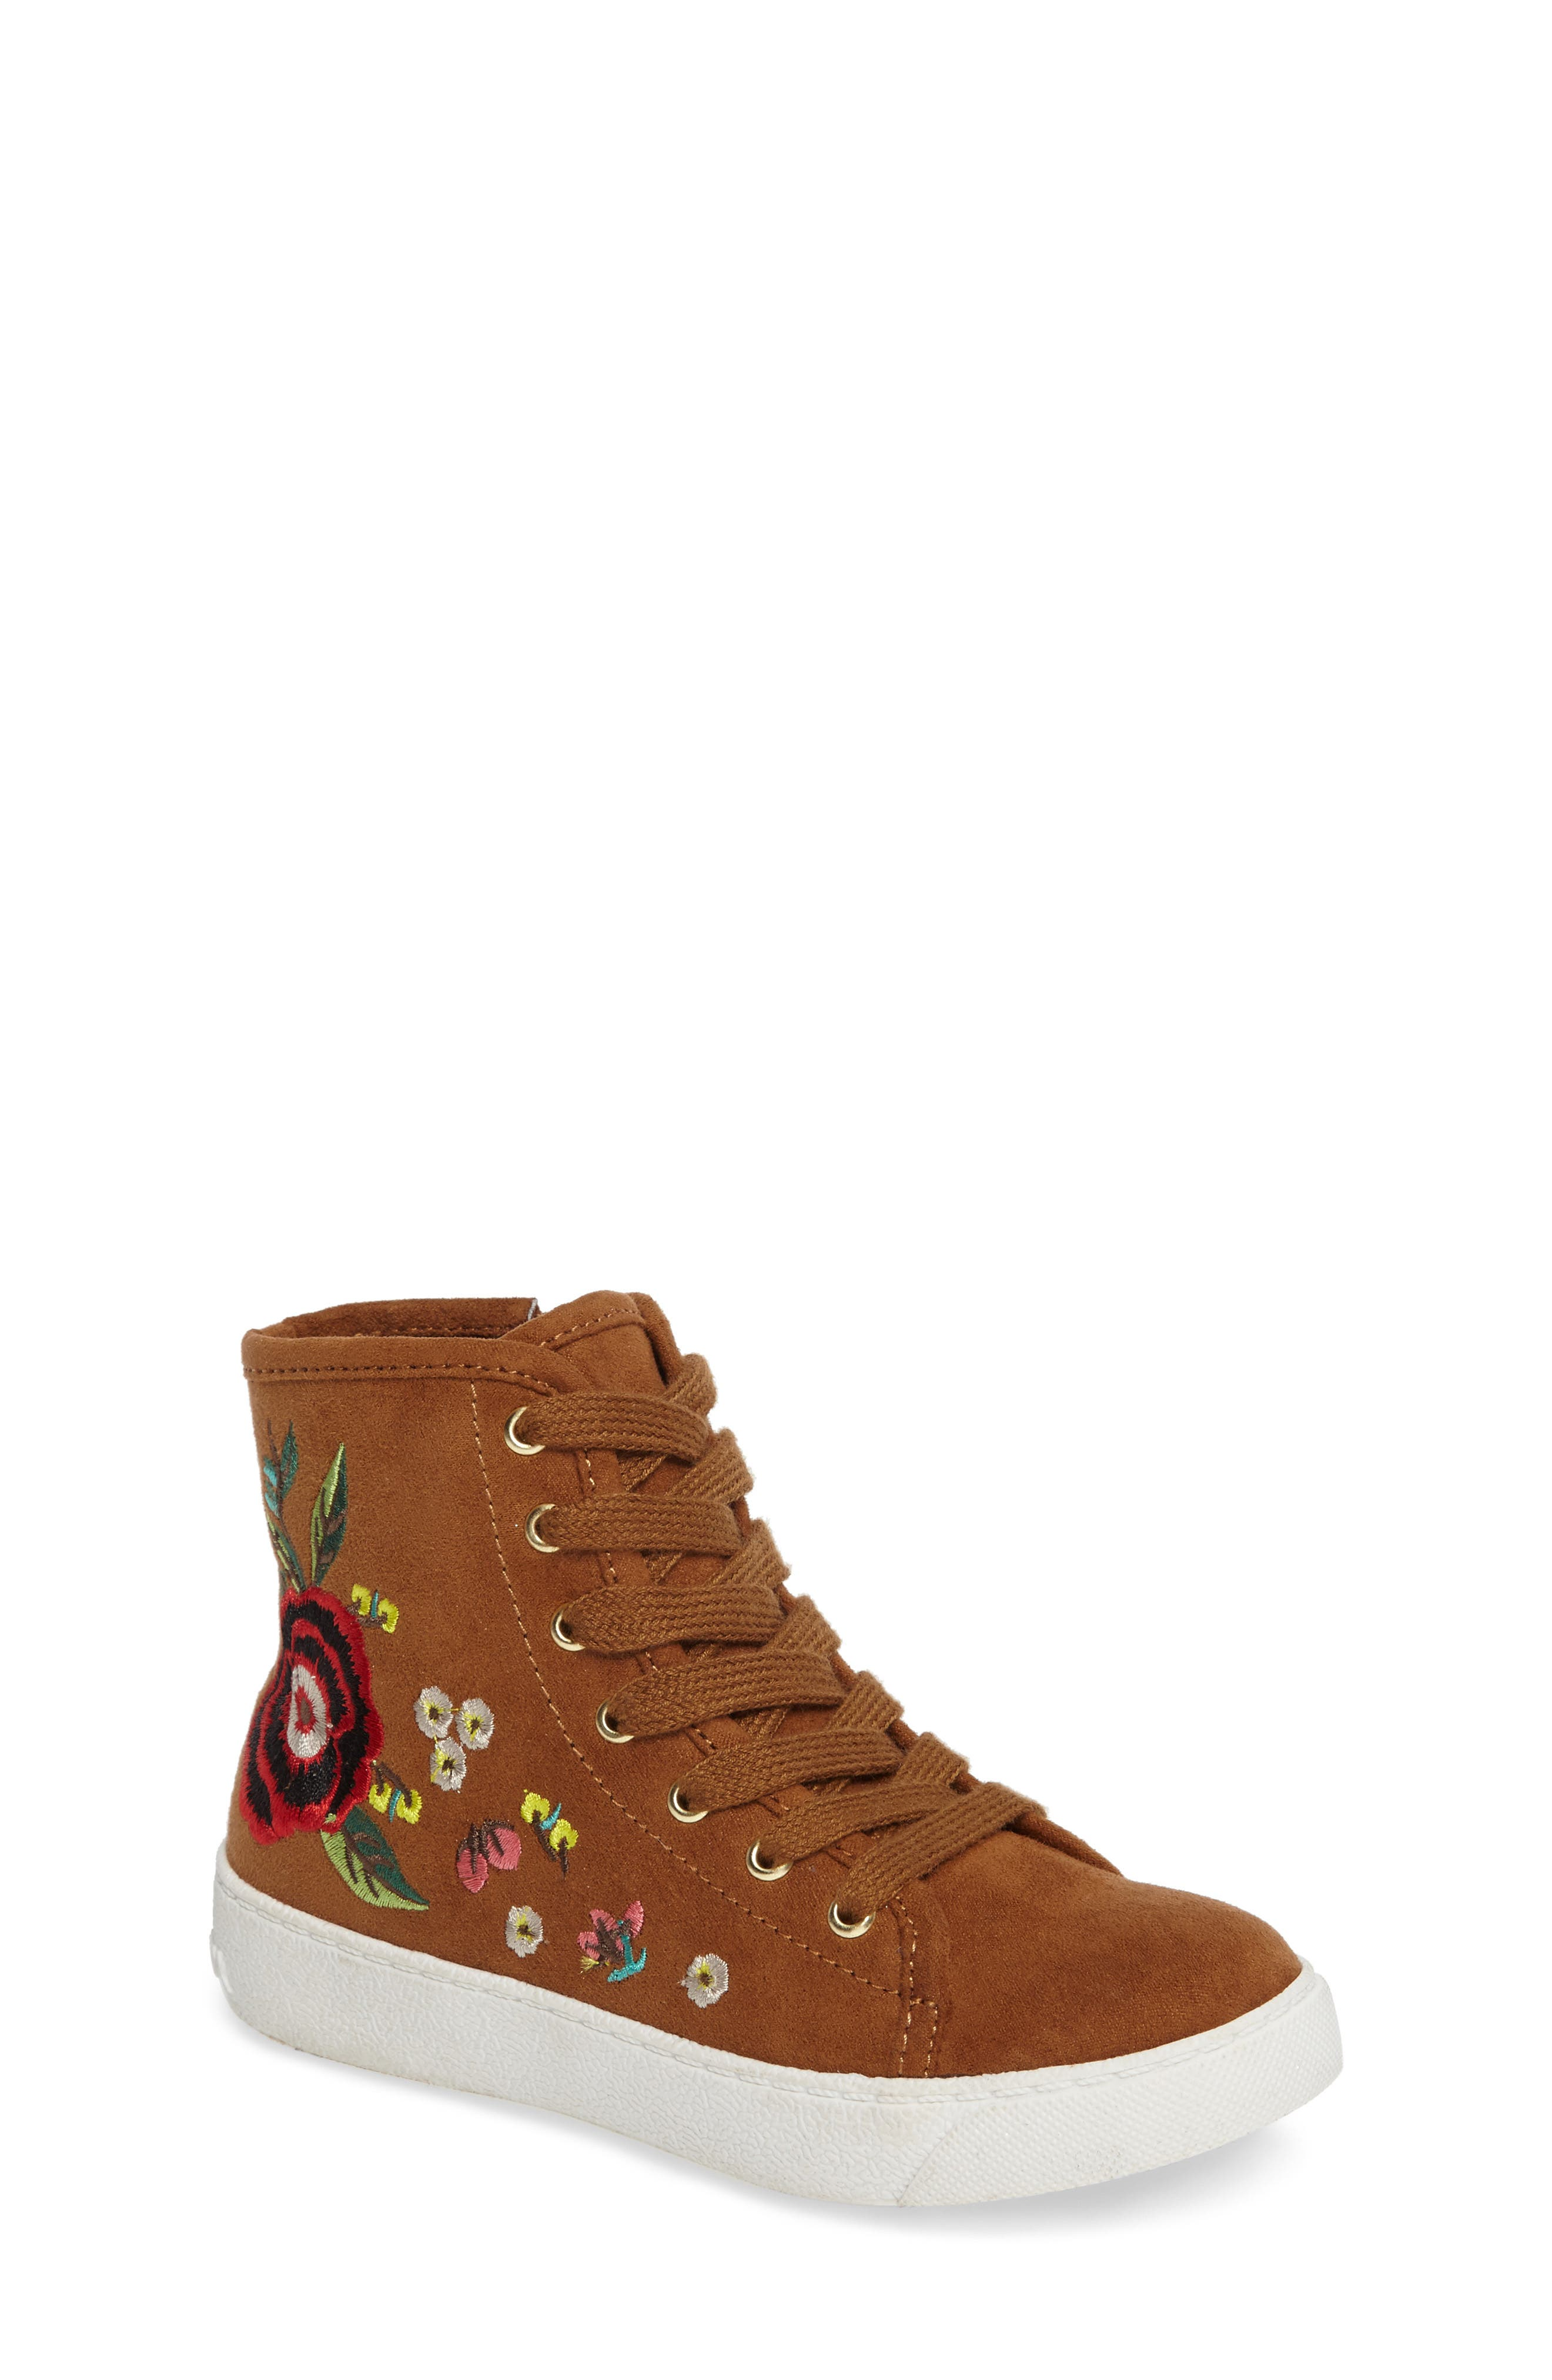 Harriet Embroidered High Top Sneaker,                         Main,                         color, Saddle Faux Leather